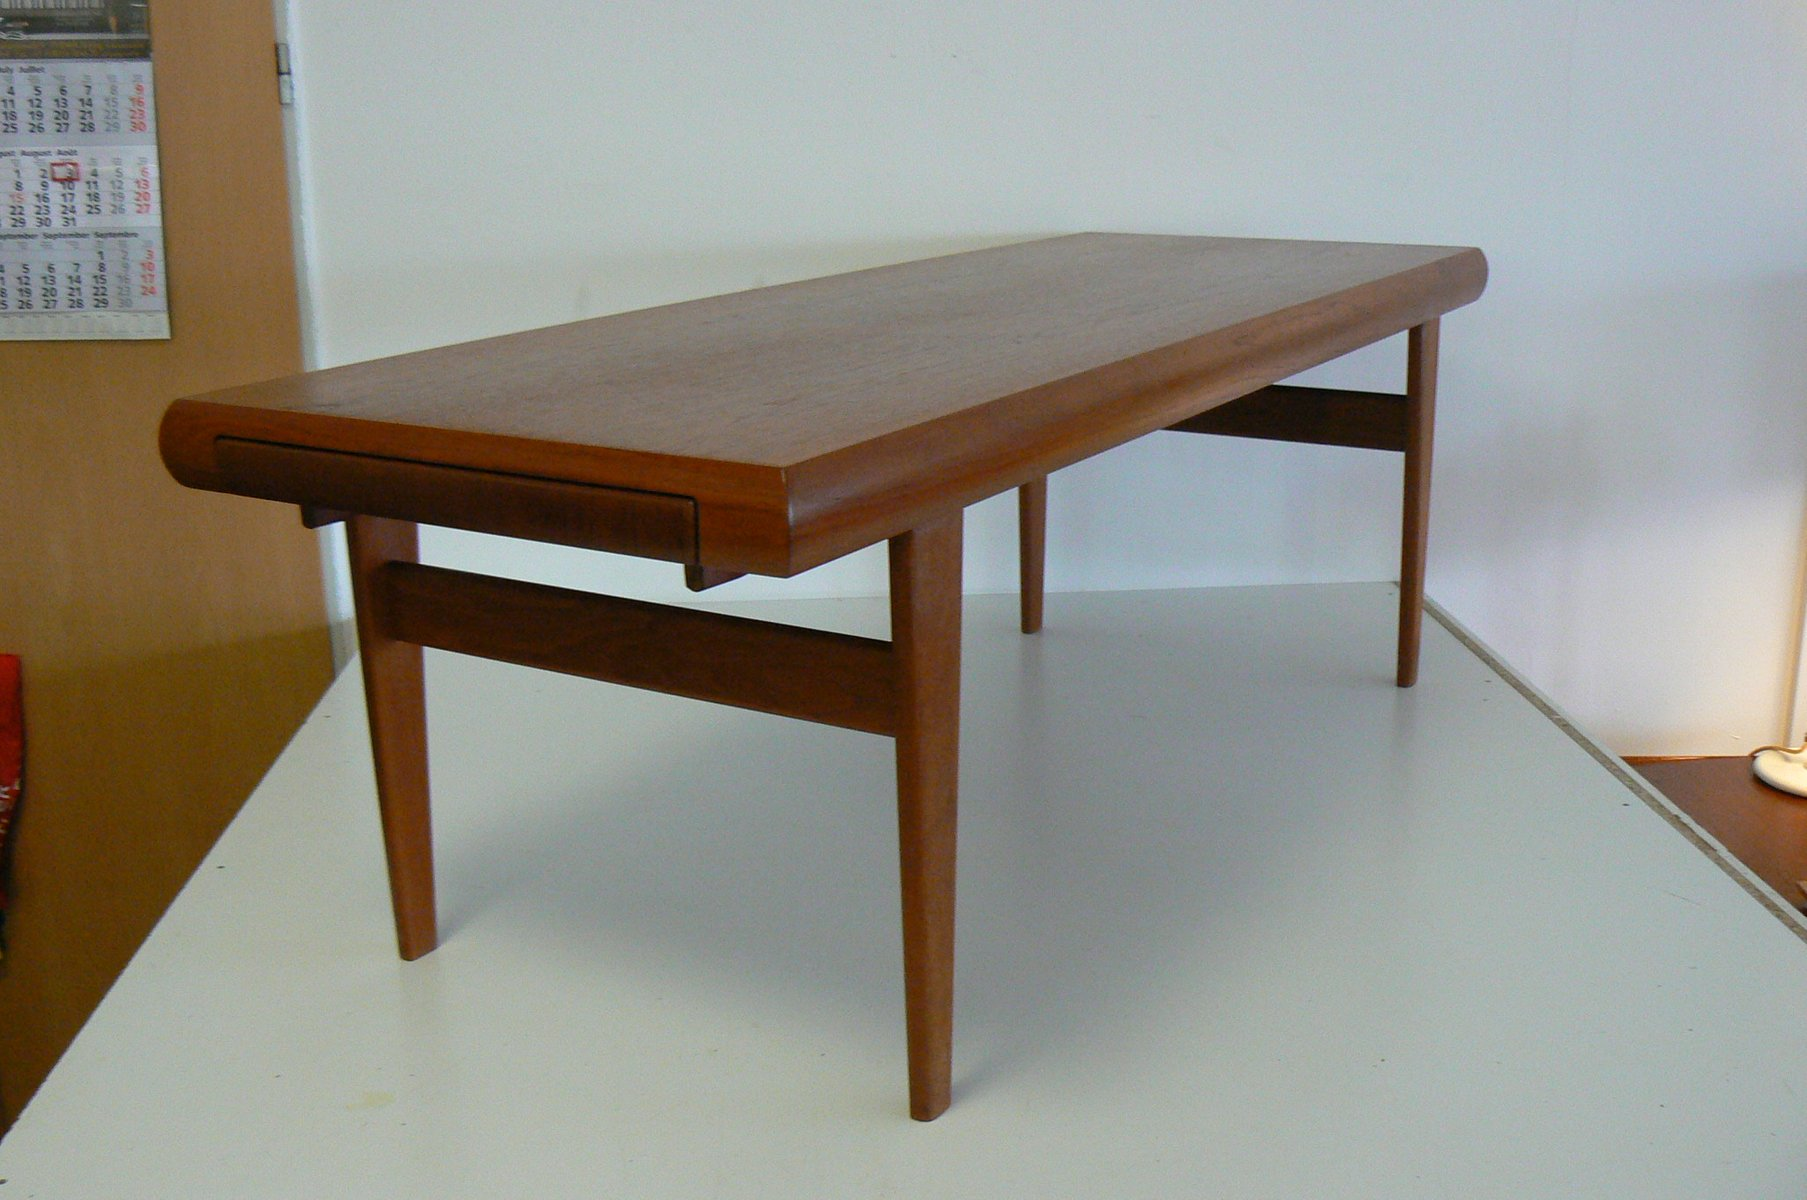 Danish Teak Coffee Table with Built In Nesting Table from Trioh